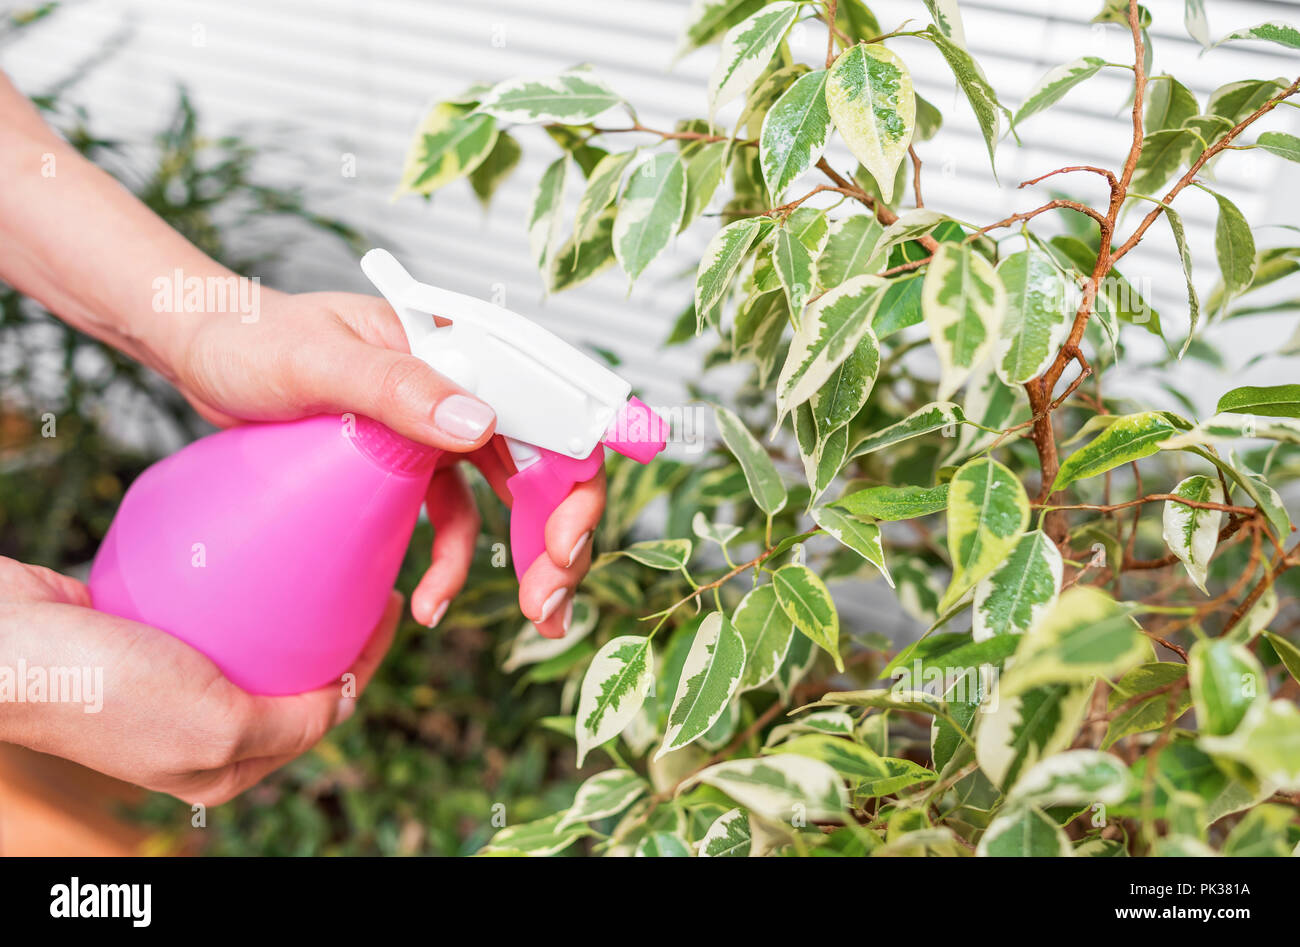 Moisten home plants with an atomizer. Close-up. - Stock Image